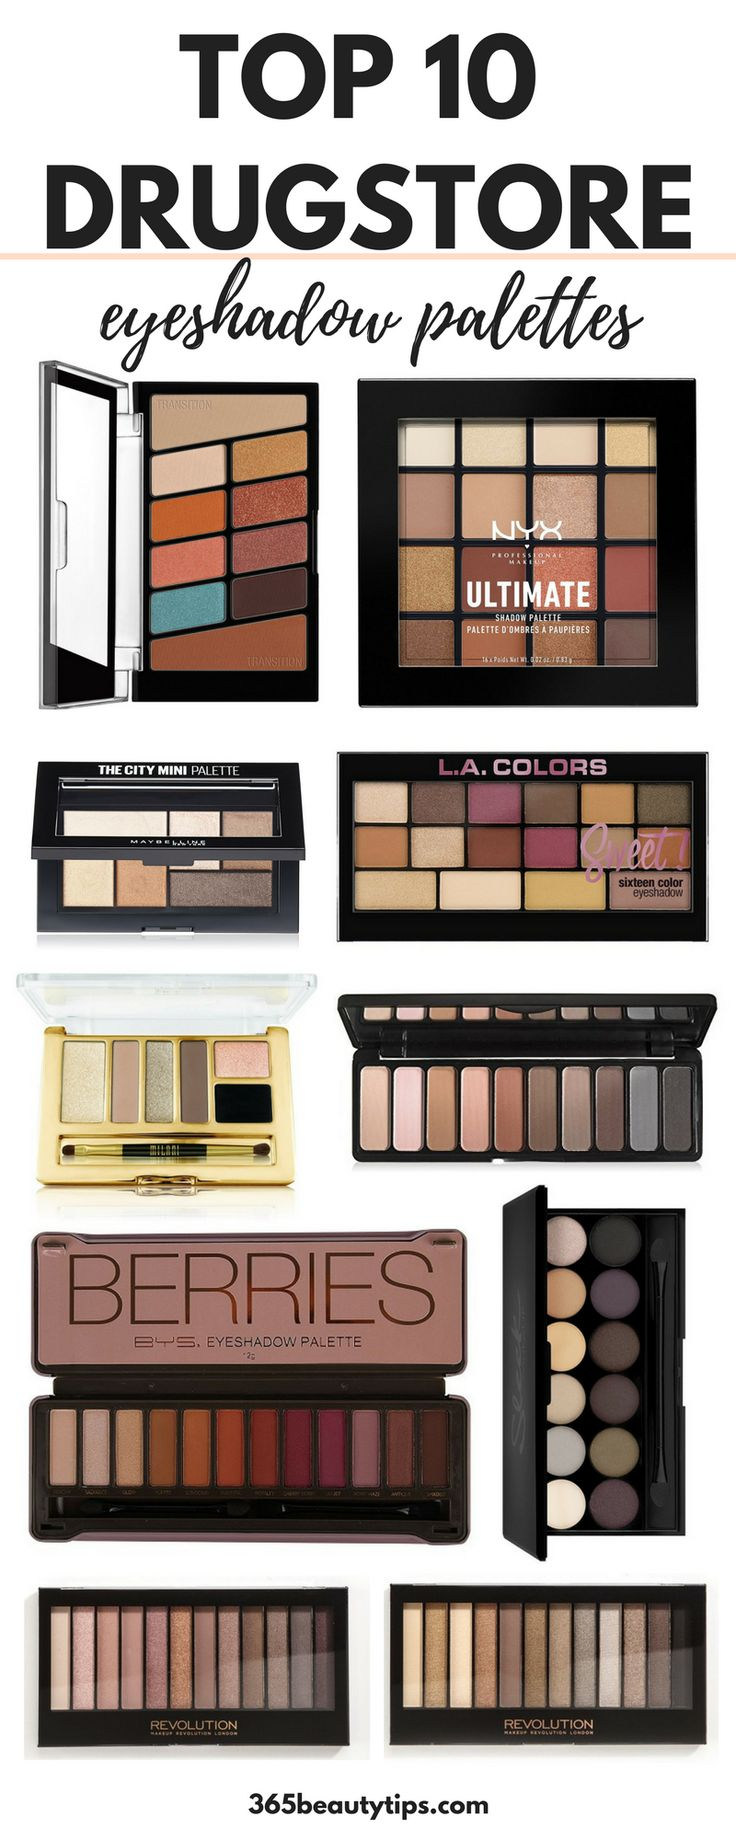 Choosing a drugstore eyeshadow palette has never been more difficult! Lately, so many drugstore brands have stepped up their game in both skin care and makeup, so there's a big choice of high quality, affordable products. Having a wide range of makeup that anyone can afford is incredible and yet a